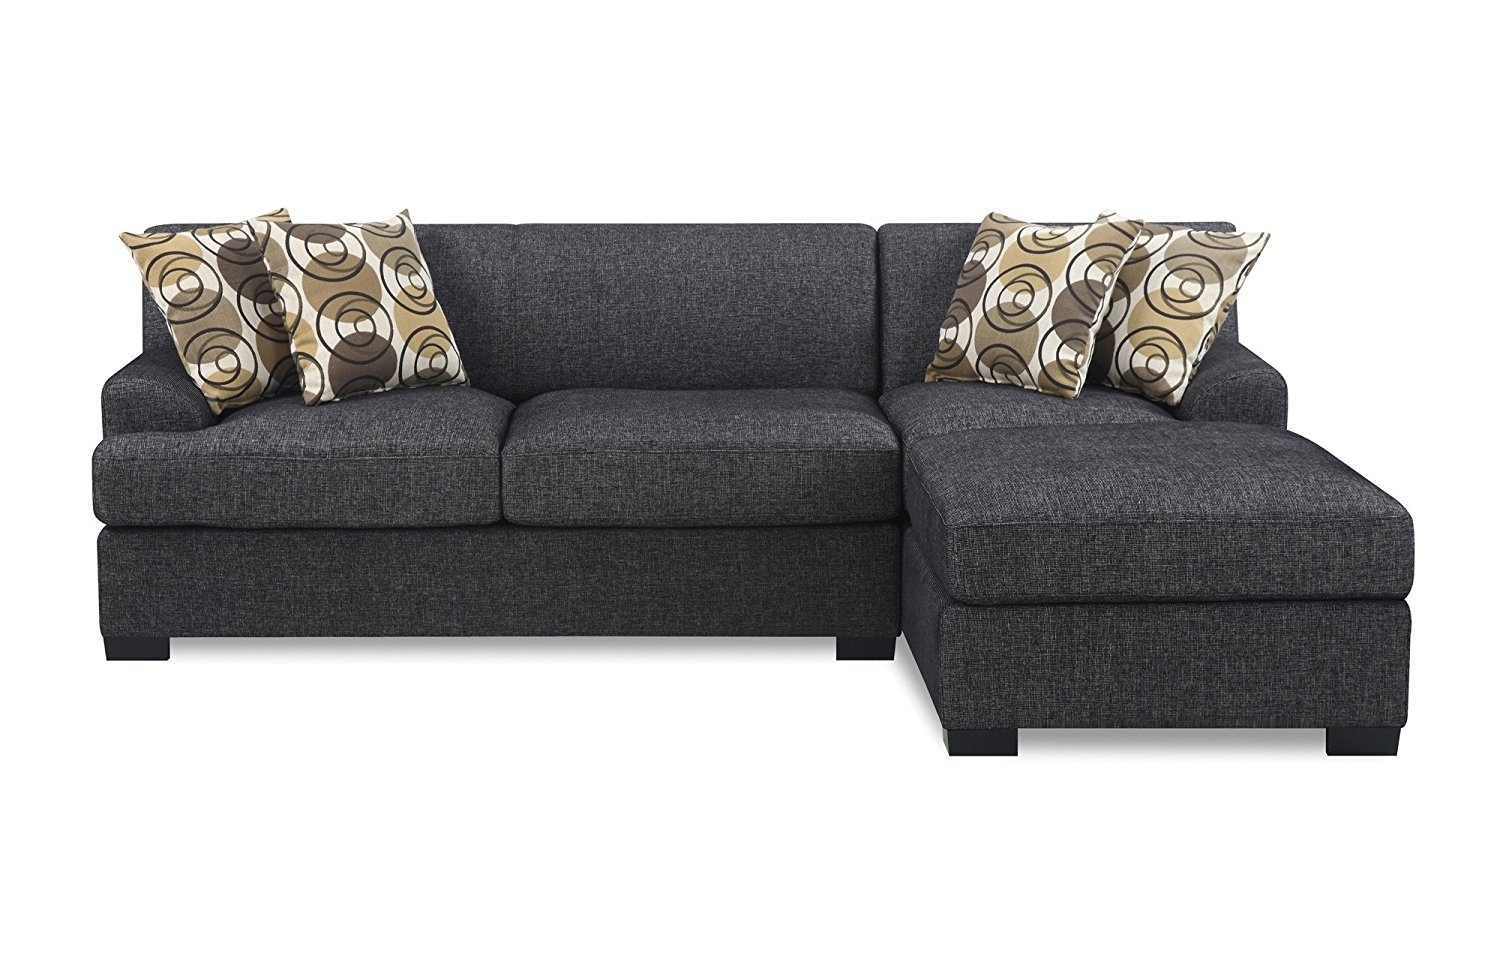 Bobkona Benford Piece Chaise Loveseat Sectional Sofa Couch With In Evan 2 Piece Sectionals With Raf Chaise (Image 6 of 25)